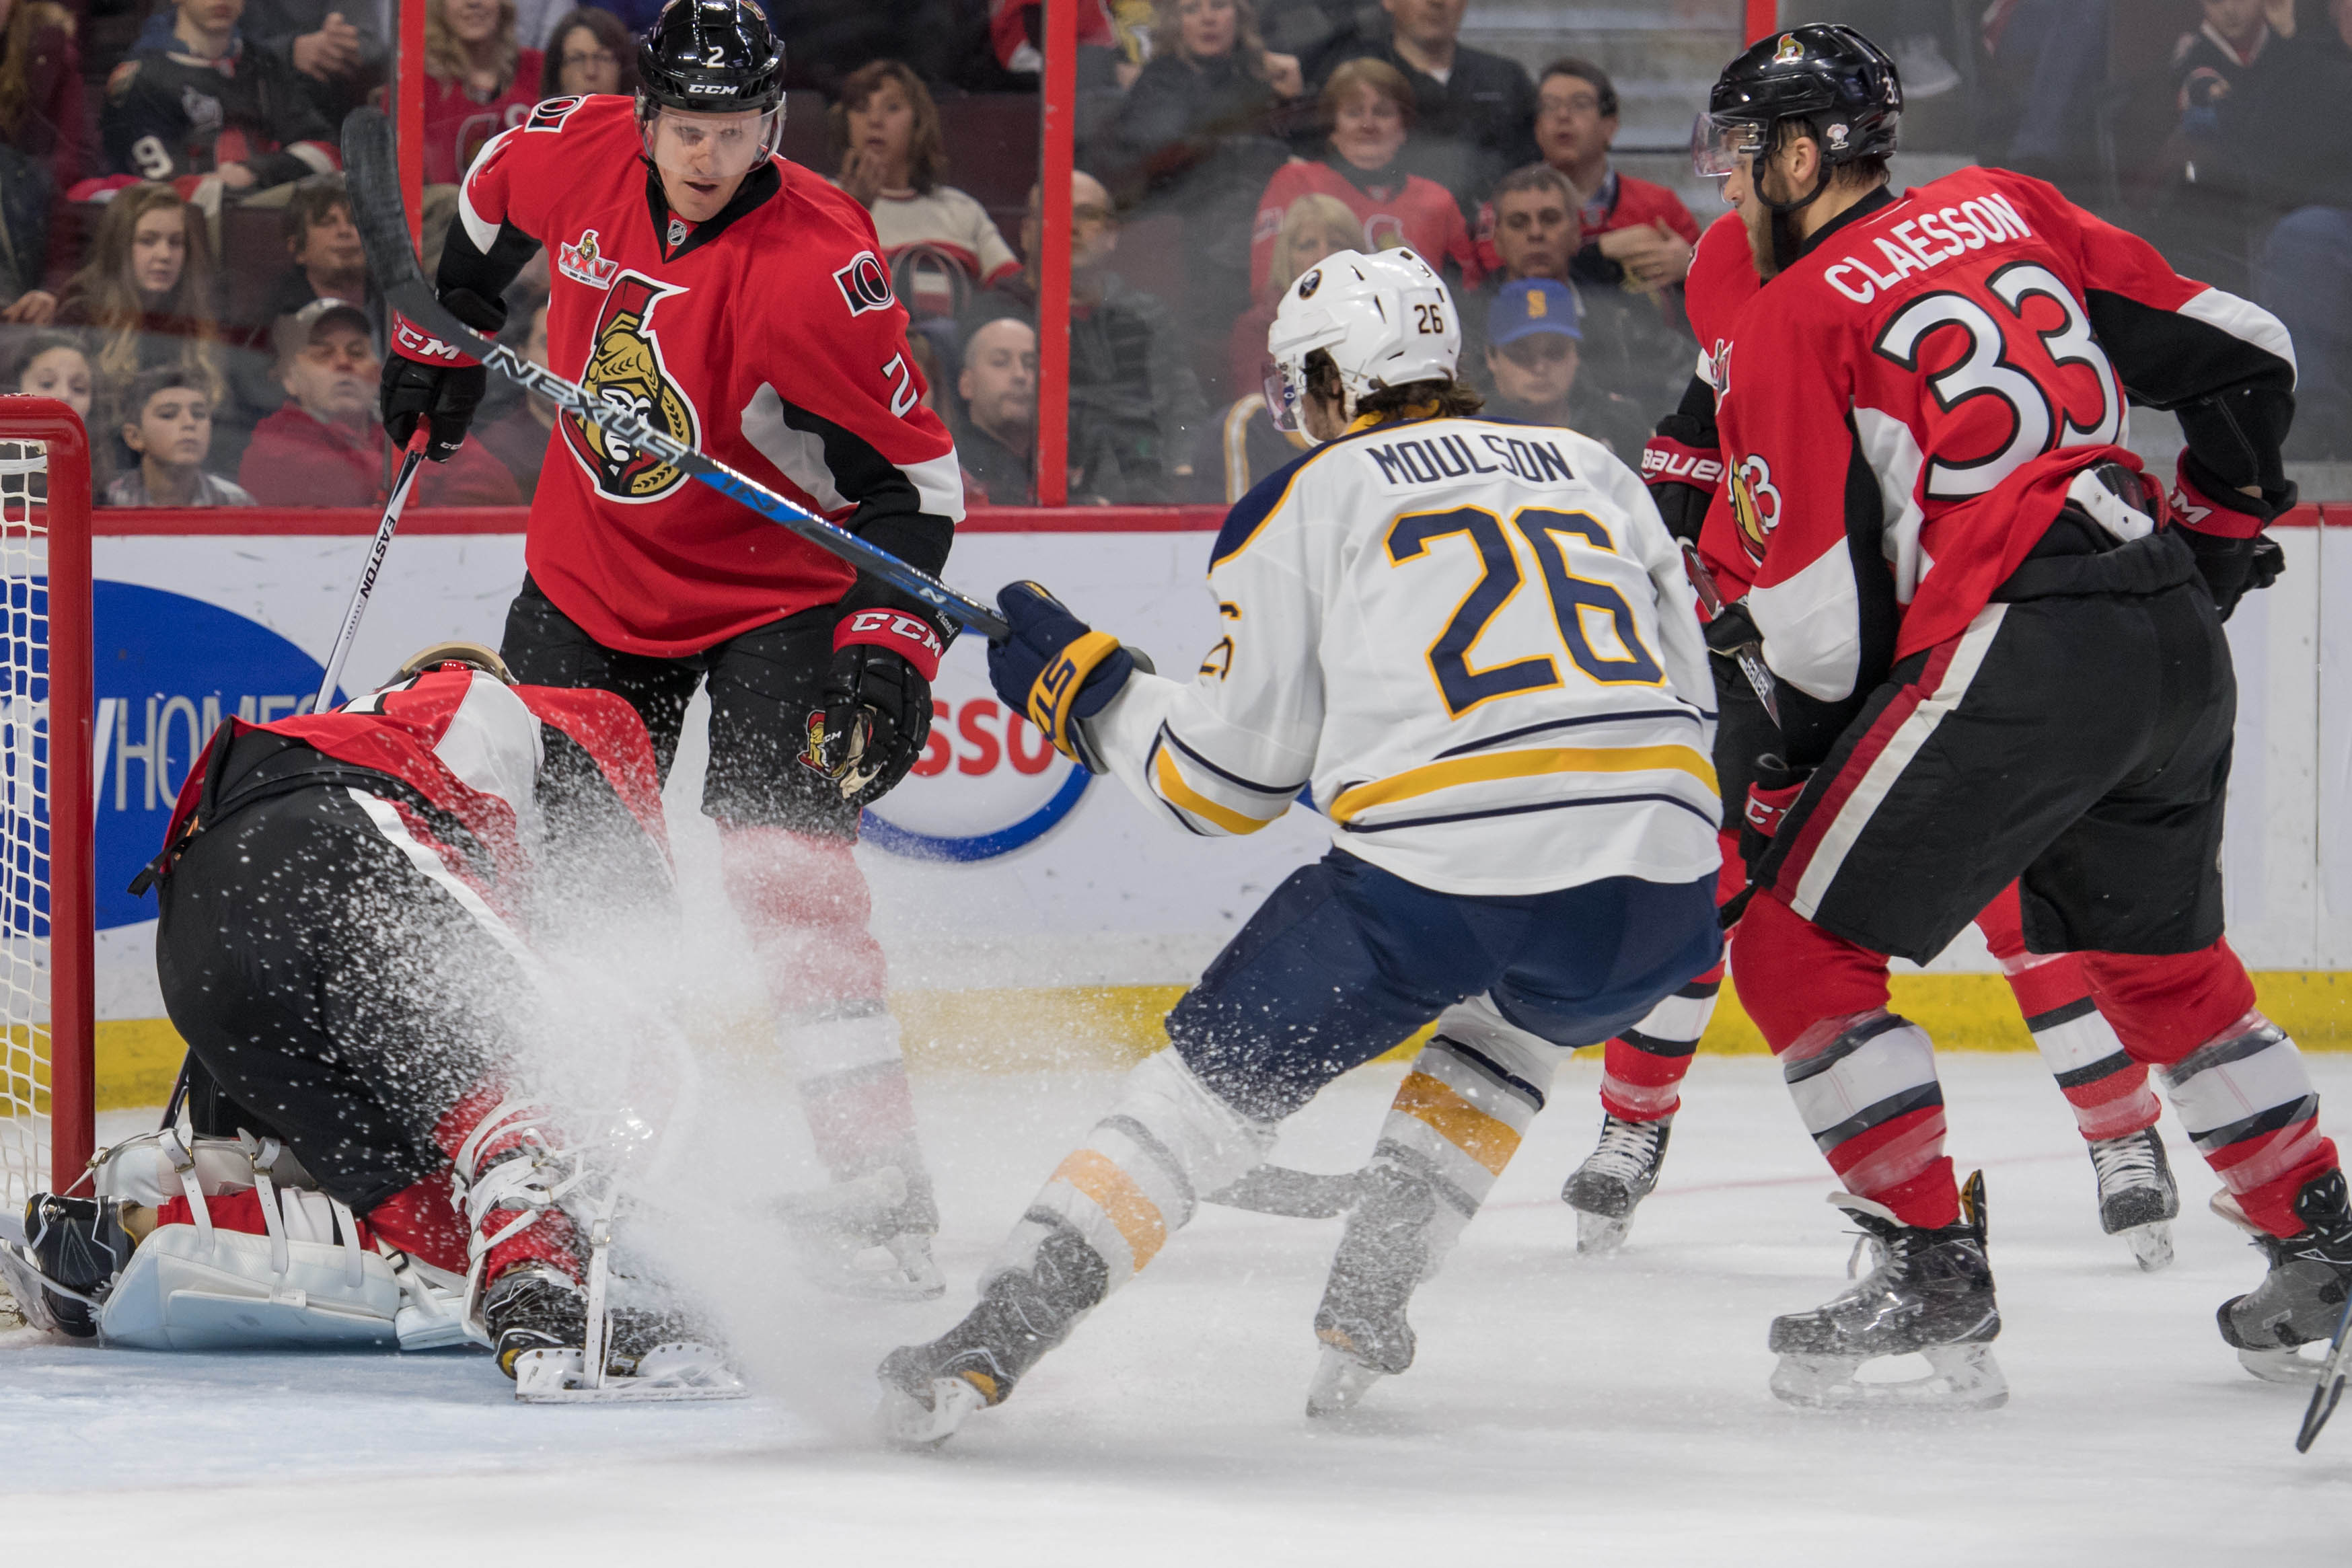 Sabres winger Matt Moulson charges the net as Ottawa goalie Craig Anderson in the first period. (Marc DesRosiers-USA TODAY Sports).